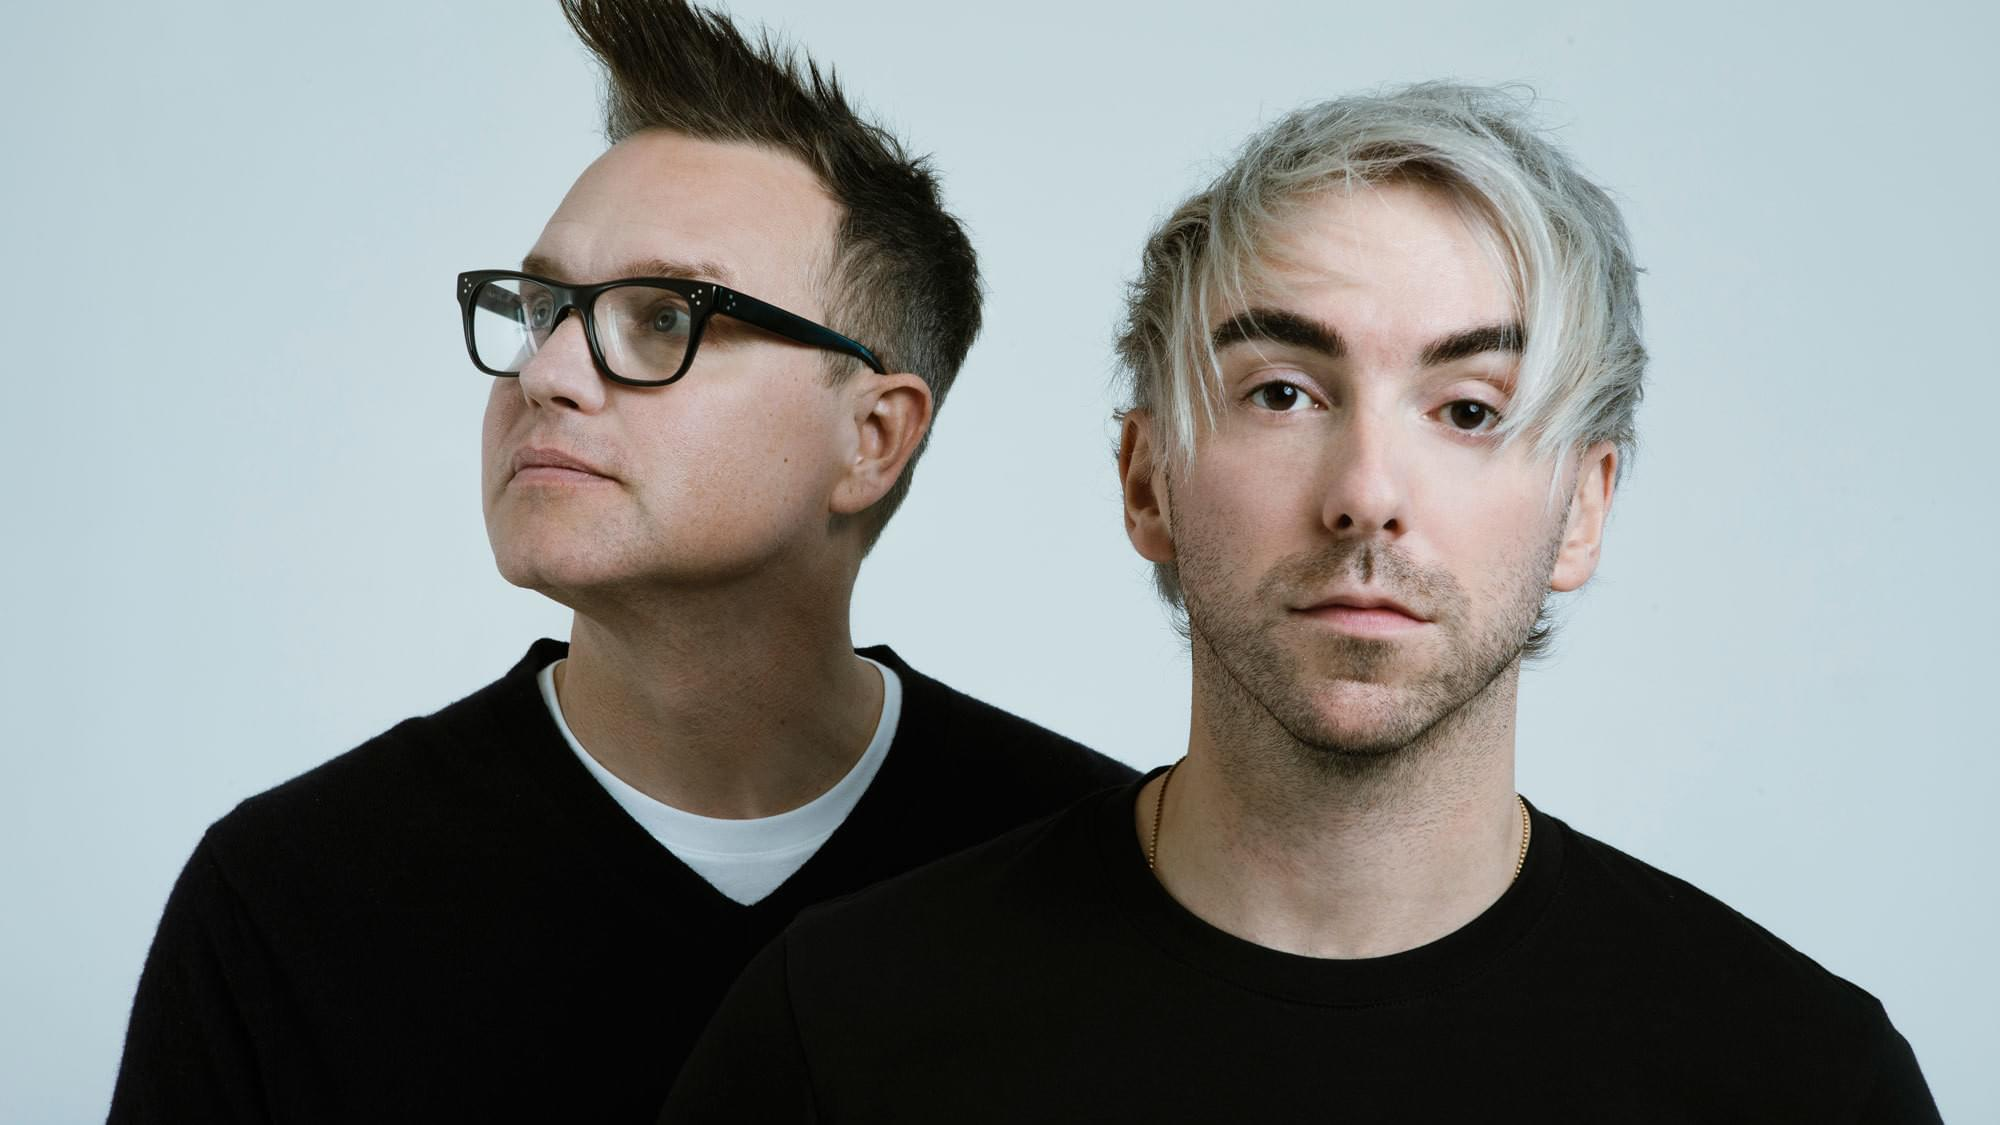 New Duo Alert: Blink-182's Mark Hoppus & All Time Low's Alex Gaskarth Team Up